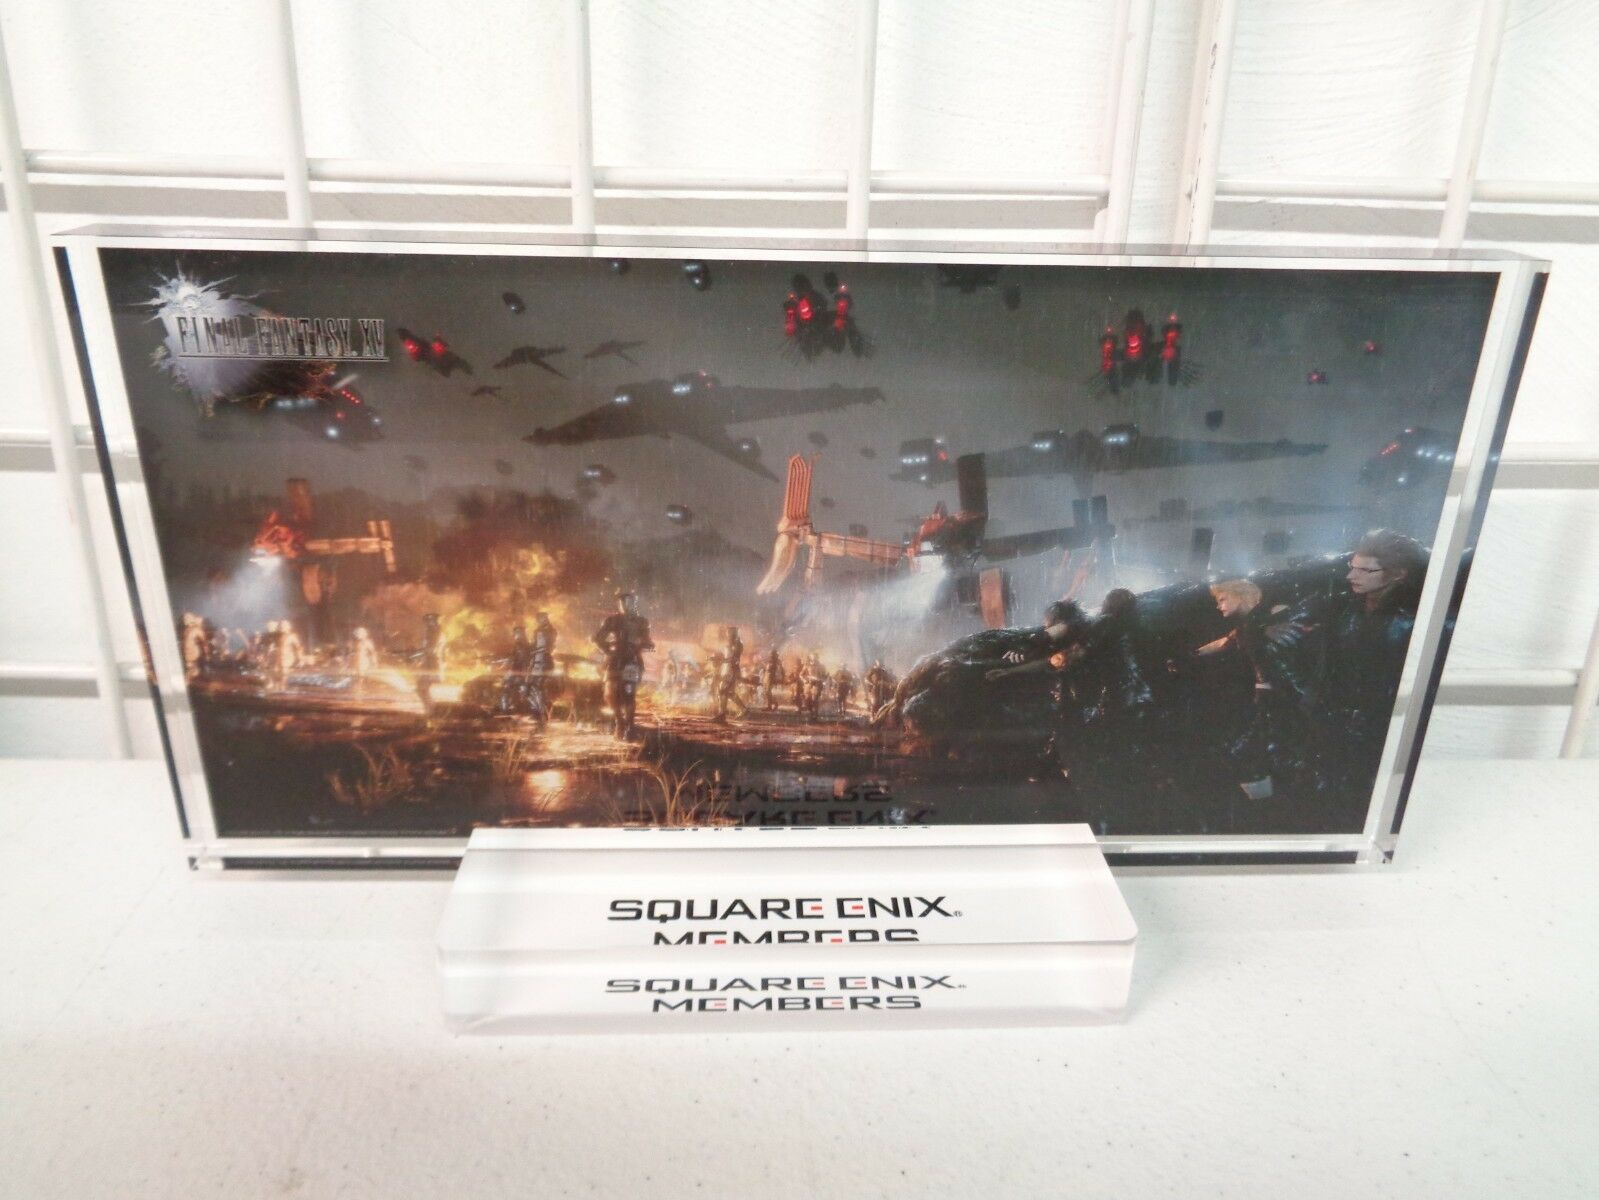 SQUARE ENIX FINAL FANTASY XV MEMBERS EXCLUSIVE PLAQUE ART ACRYLIC